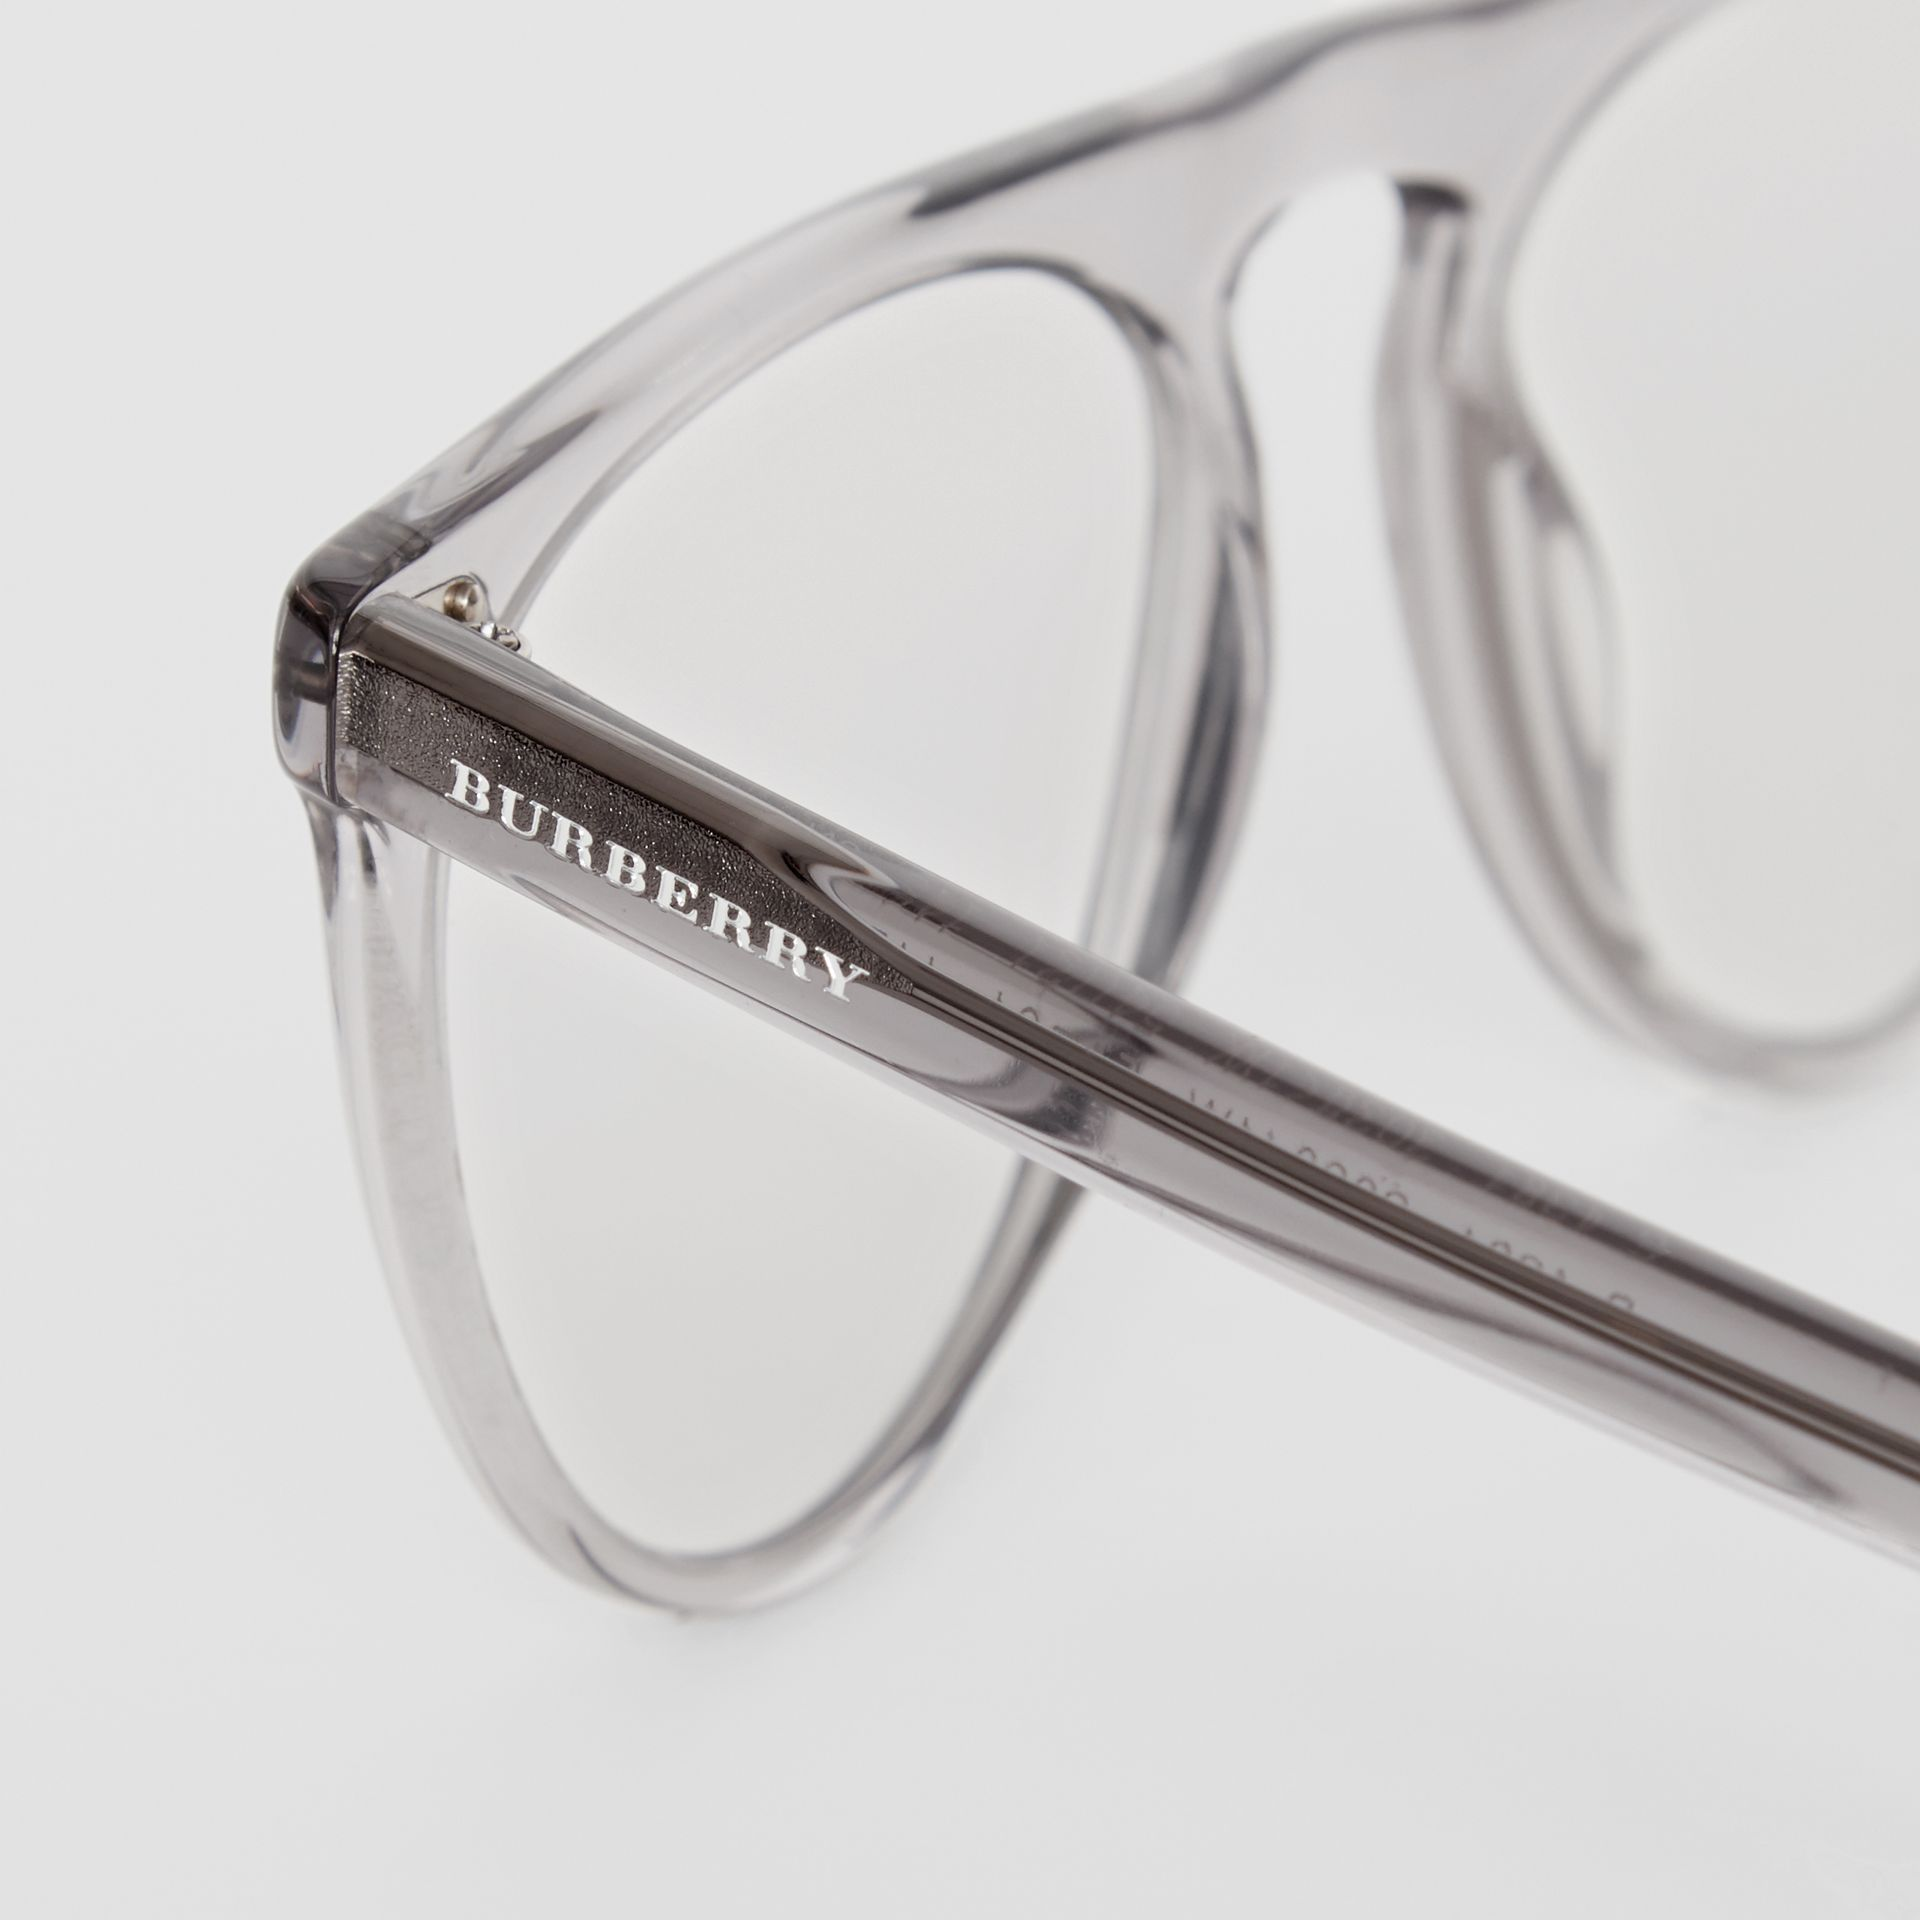 Keyhole D-shaped Optical Frames in Grey - Men | Burberry Singapore - gallery image 1